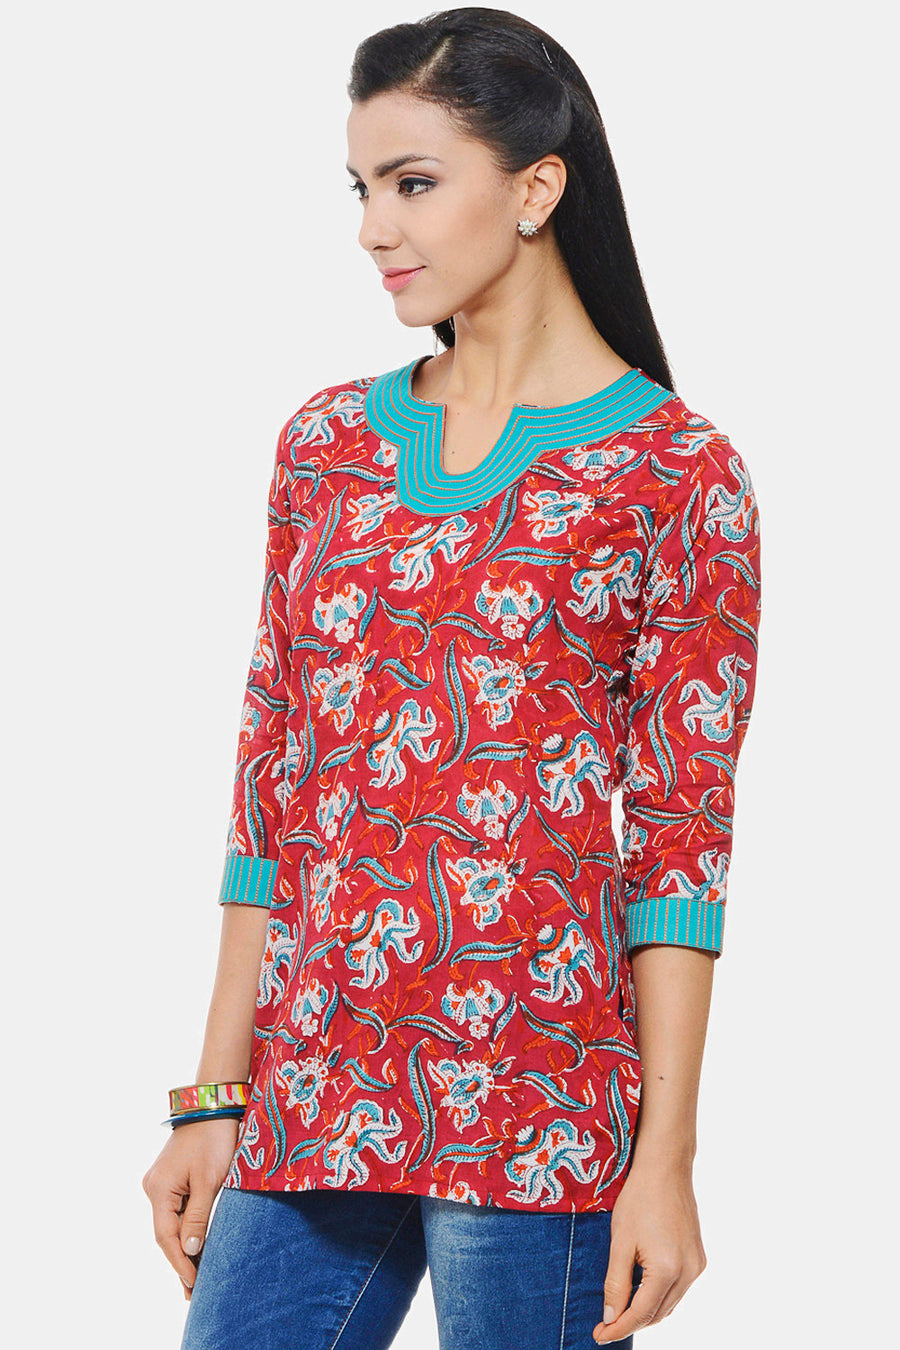 Hand Block Printed Indian Tunic in red floral design with Embroidery on neck and sleeves